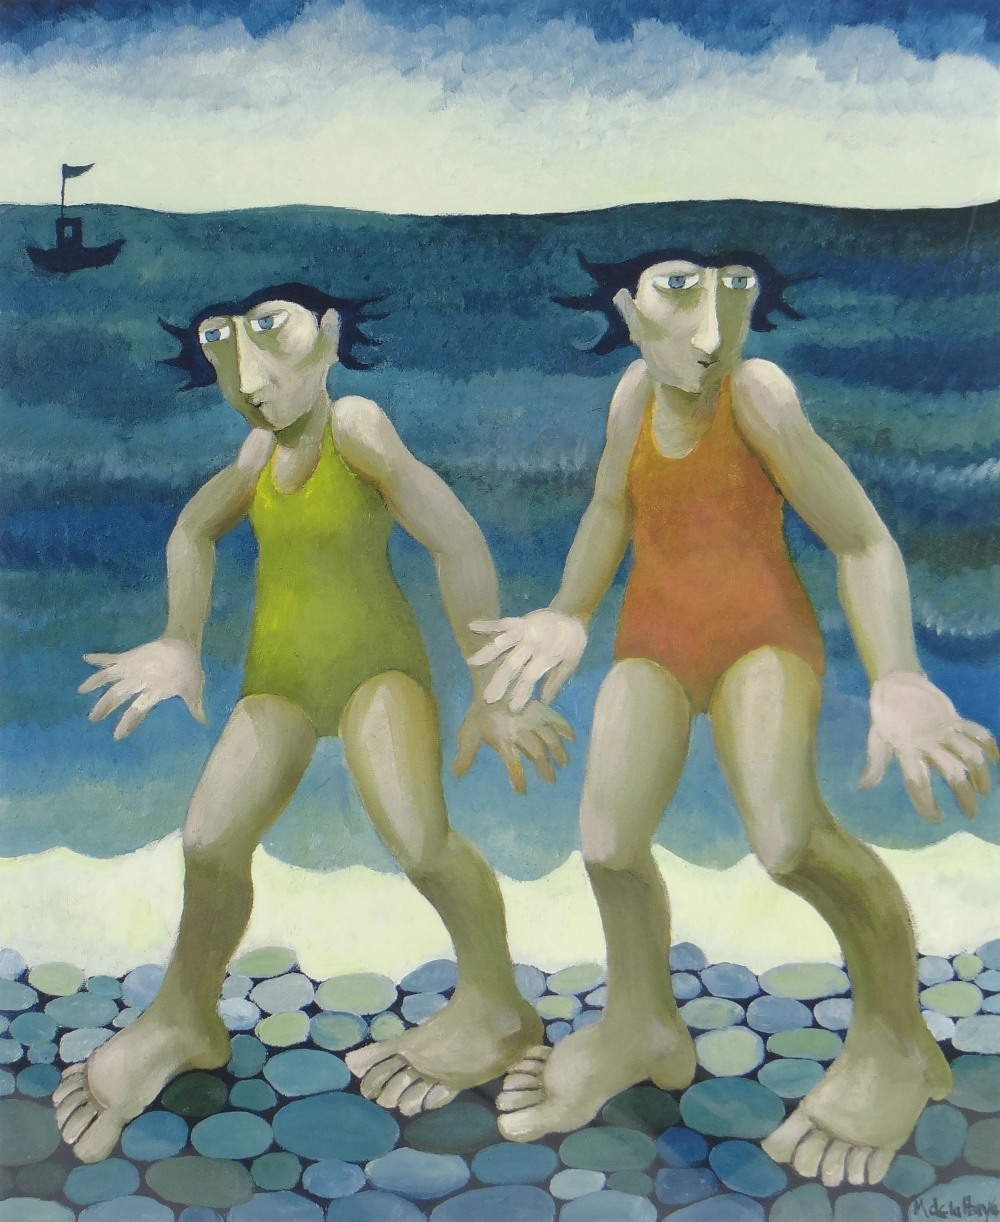 MURIEL DELAHAYE limited edition (93/275) colour print - 'Frozen Bathers', signed in pencil, 45 x